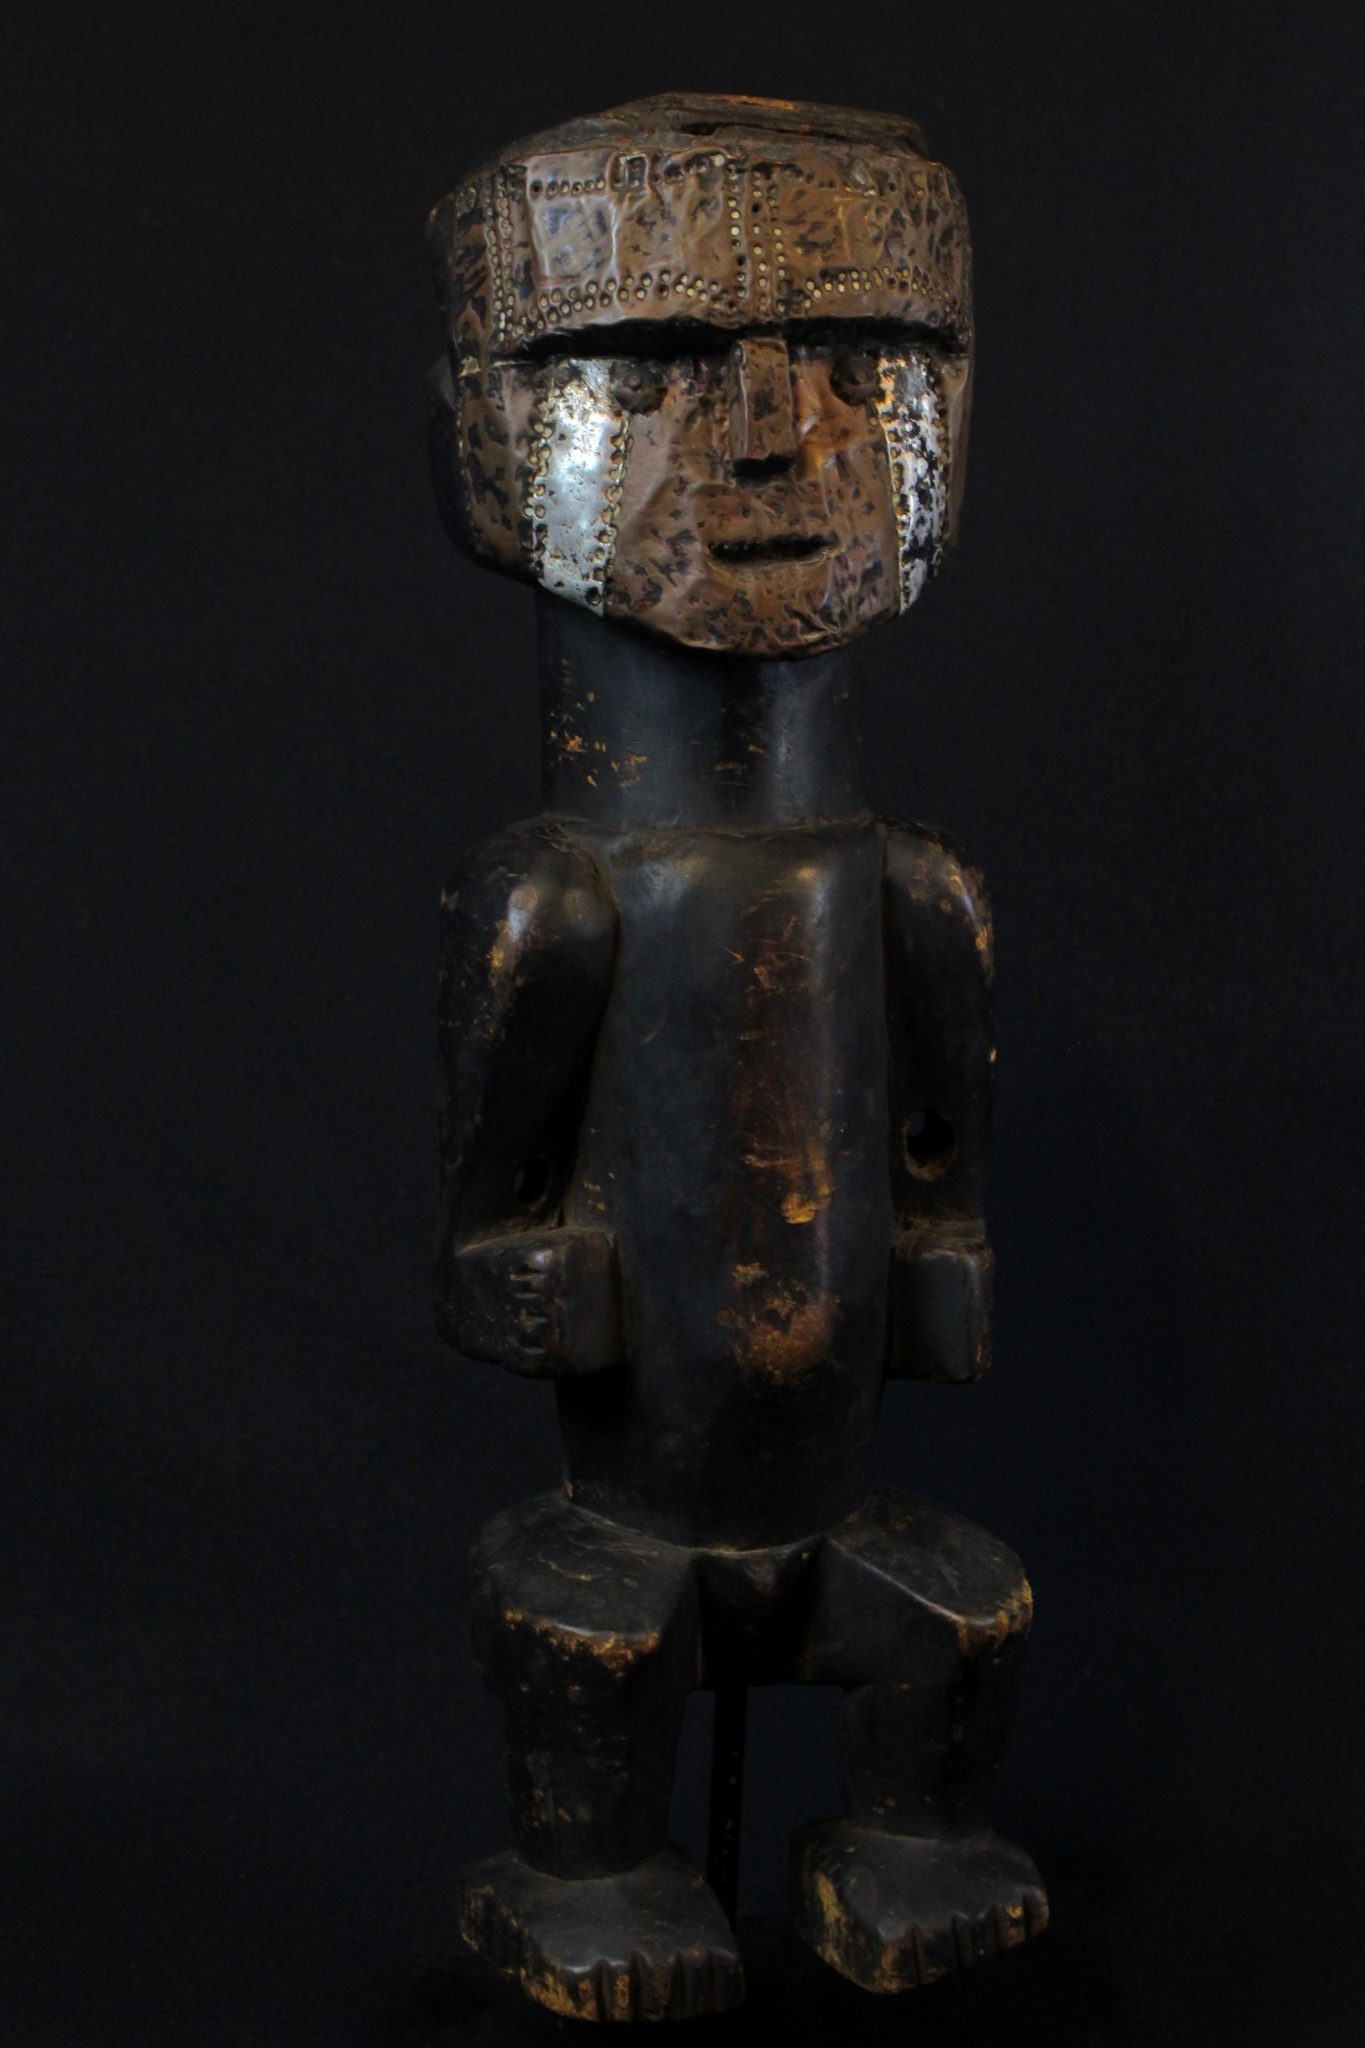 "Shaman Effigy Statue, Sumatra Island, Indonesia, Batak tribe, Early to mid 20th c, Wood, metal, pigment, patinated with use and age. For protecting the shaman during healing rituals. 15 ¾"" x 5"" x 4 ¾"", $800."